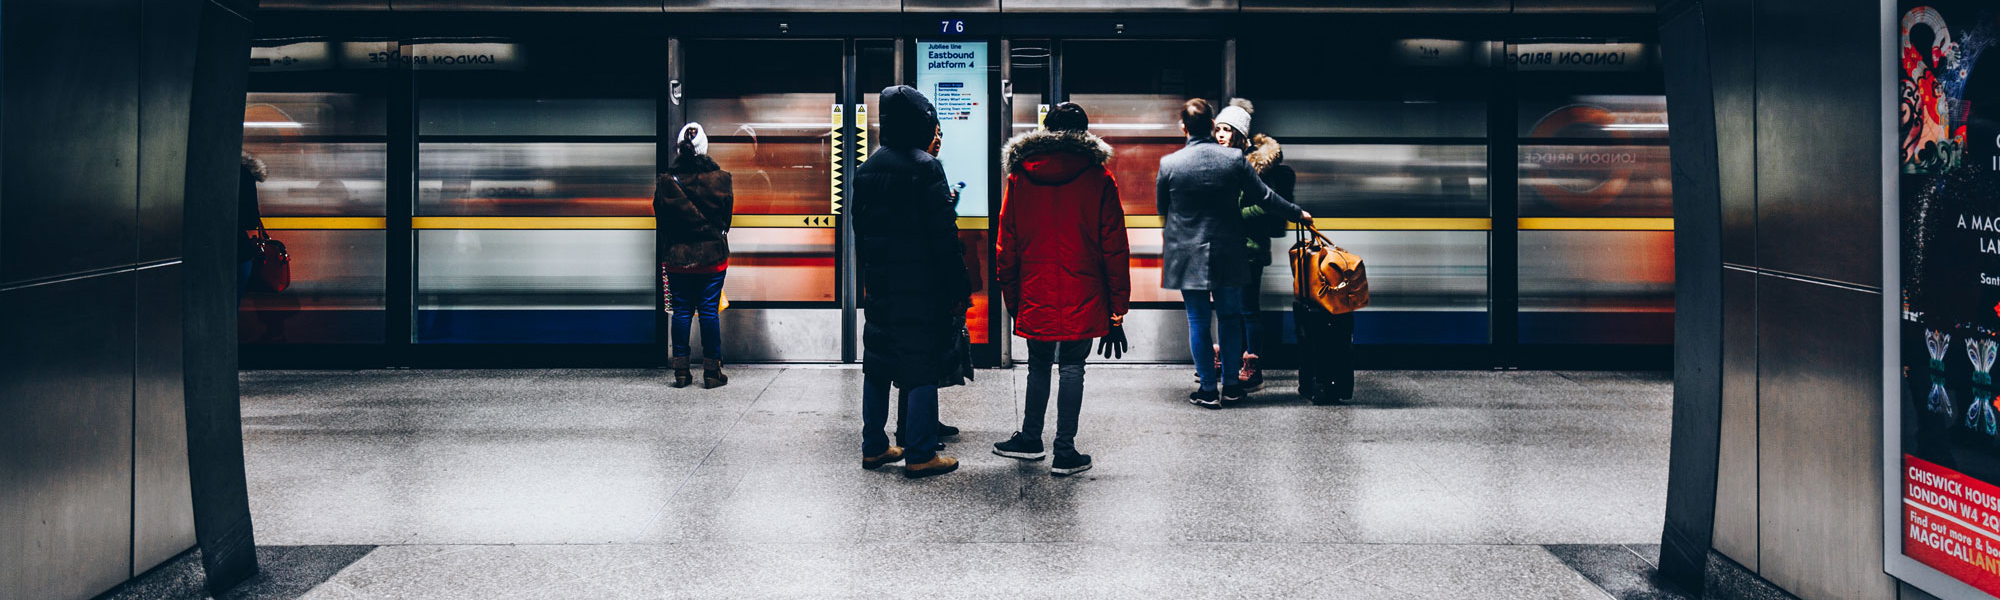 Passengers on London tube Photo by Christopher Burns on Unsplash